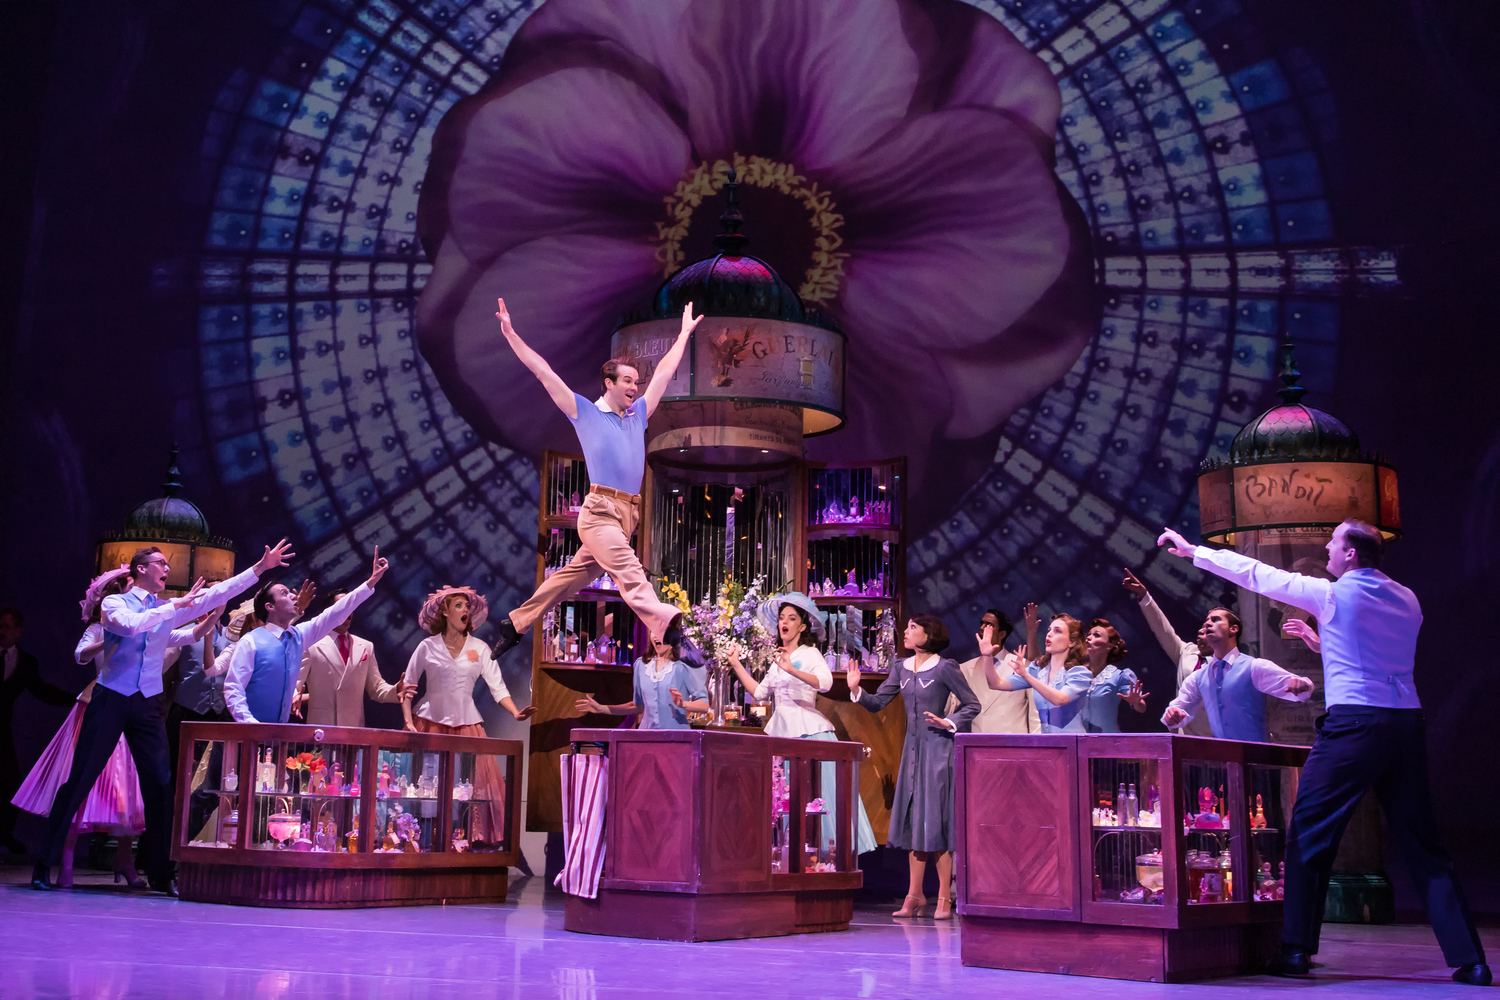 BWW Review: AN AMERICAN IN PARIS at The Overture Center